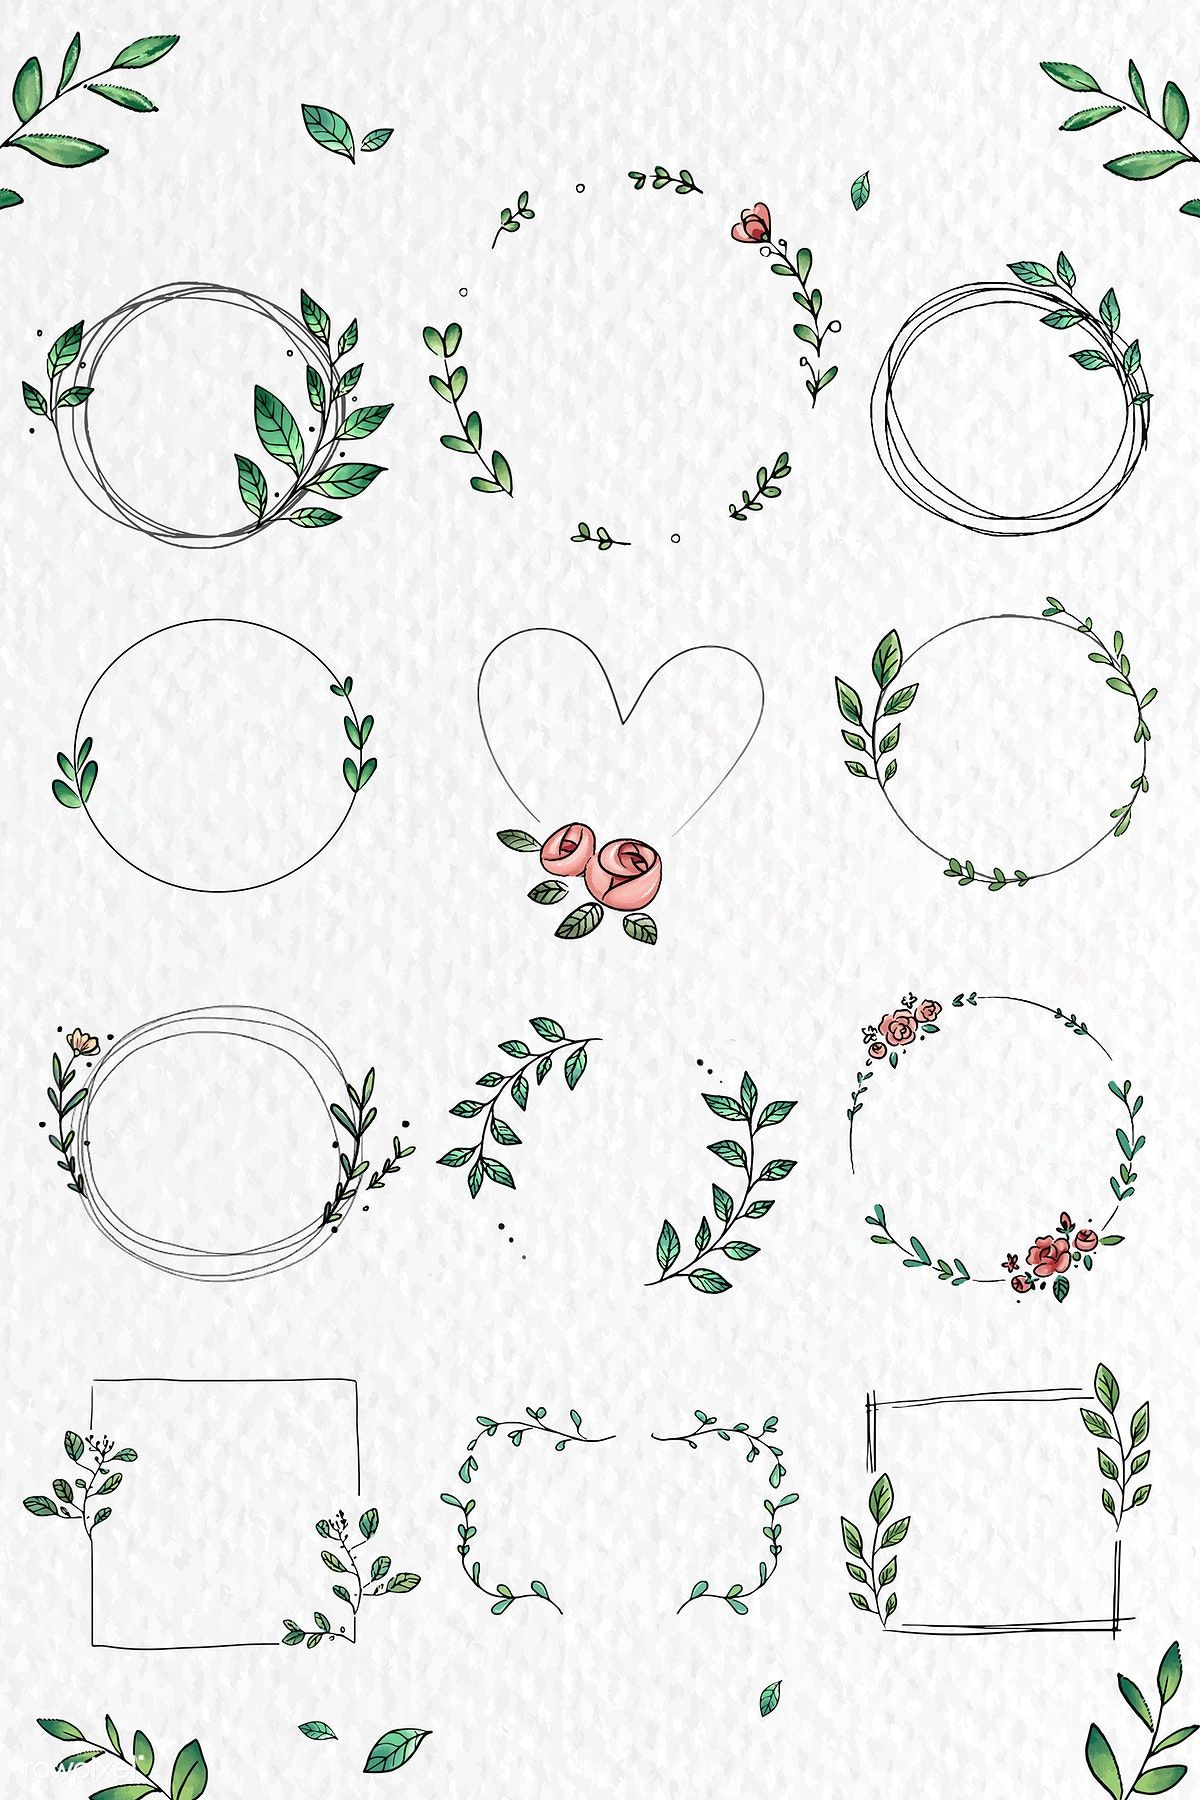 Download premium vector of Doodle floral wreath vector collection 843818